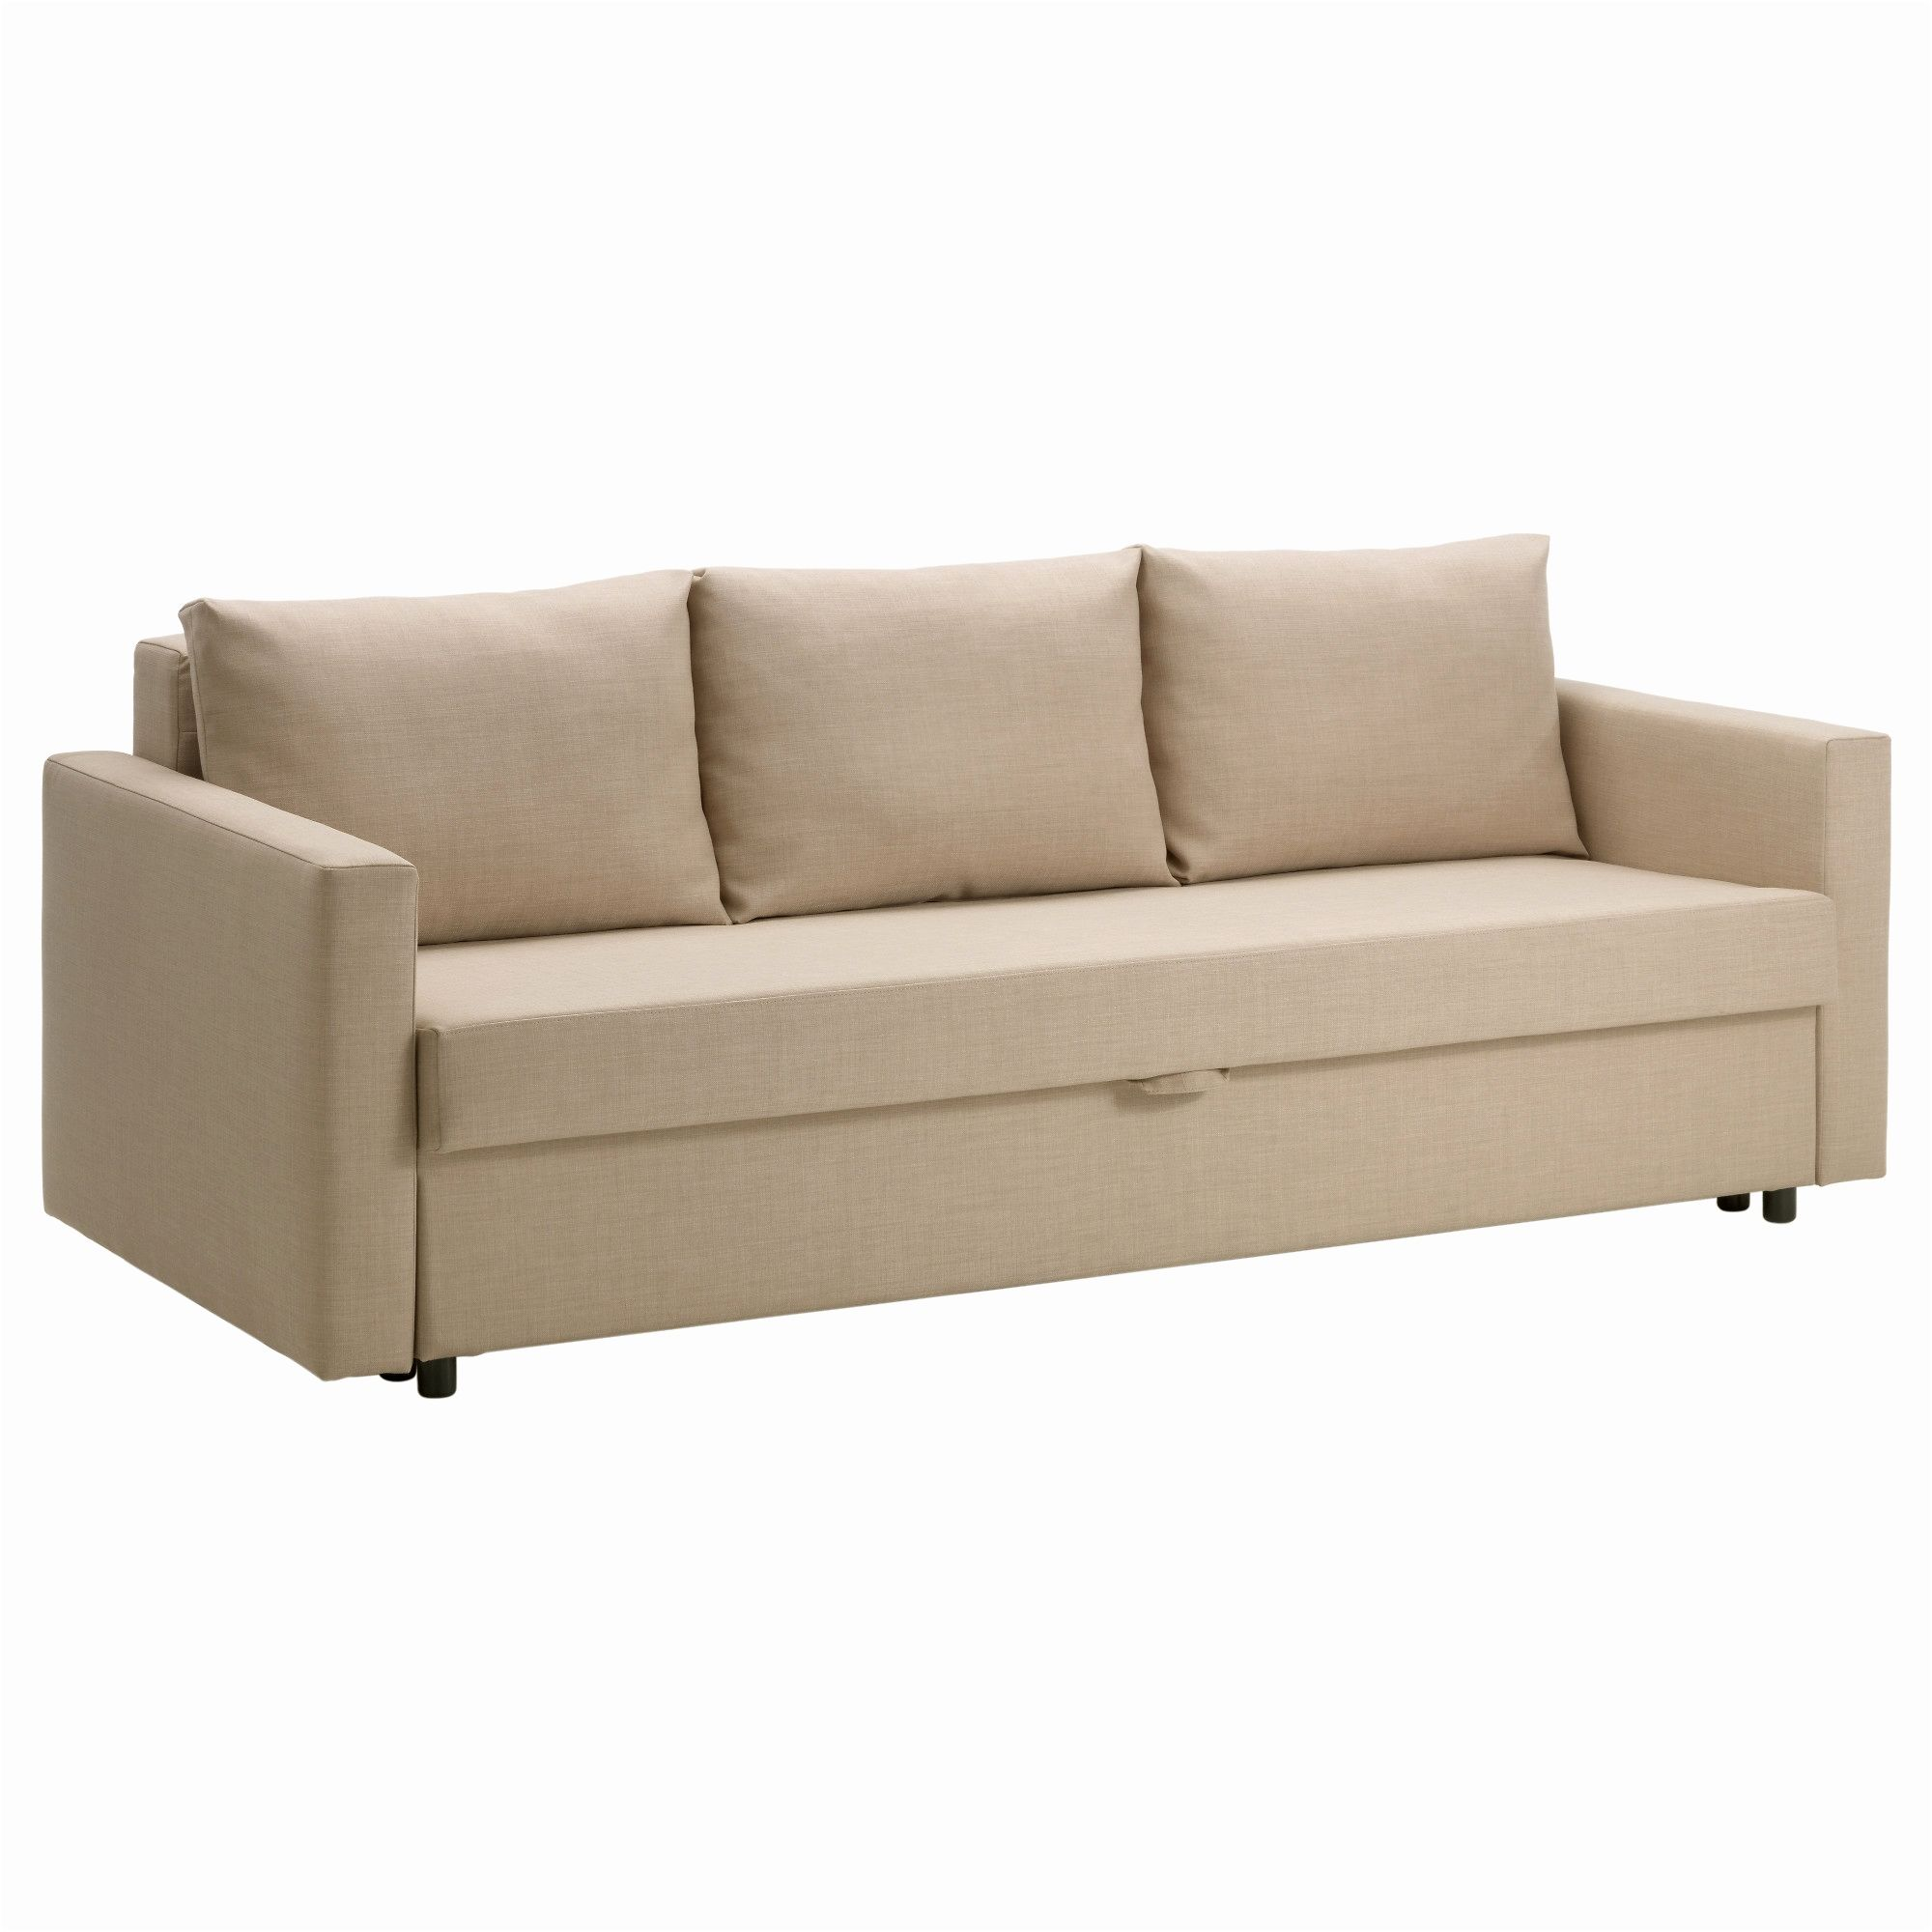 beautiful loveseat sleeper sofa ikea decoration-Cute Loveseat Sleeper sofa Ikea Wallpaper